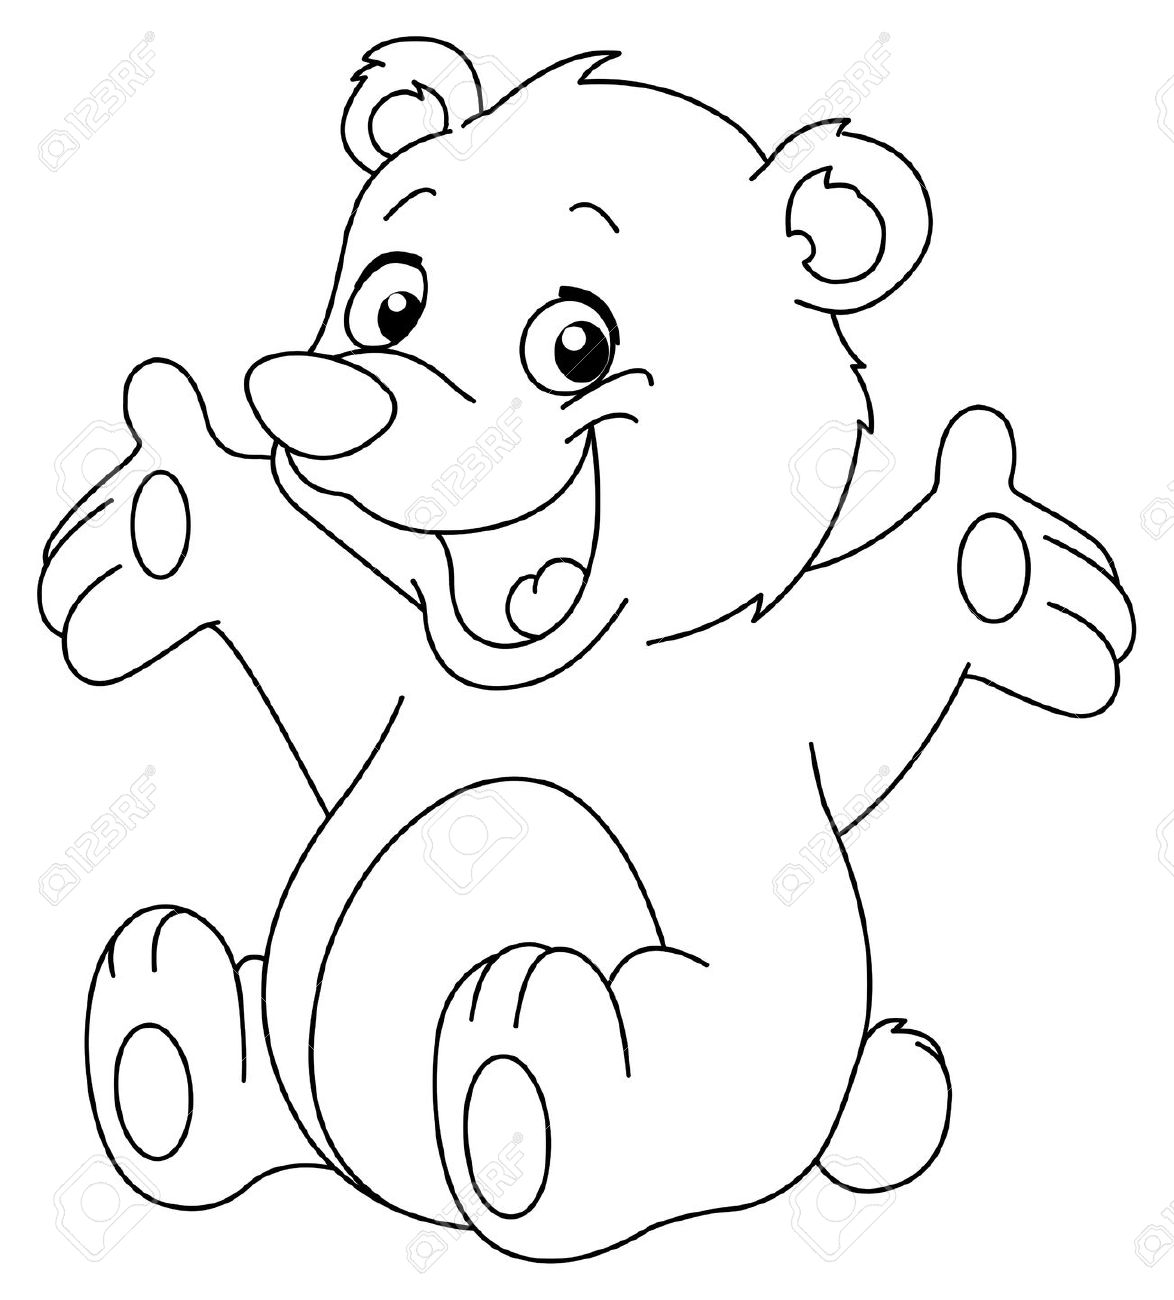 Teddy clipart coloring page #9